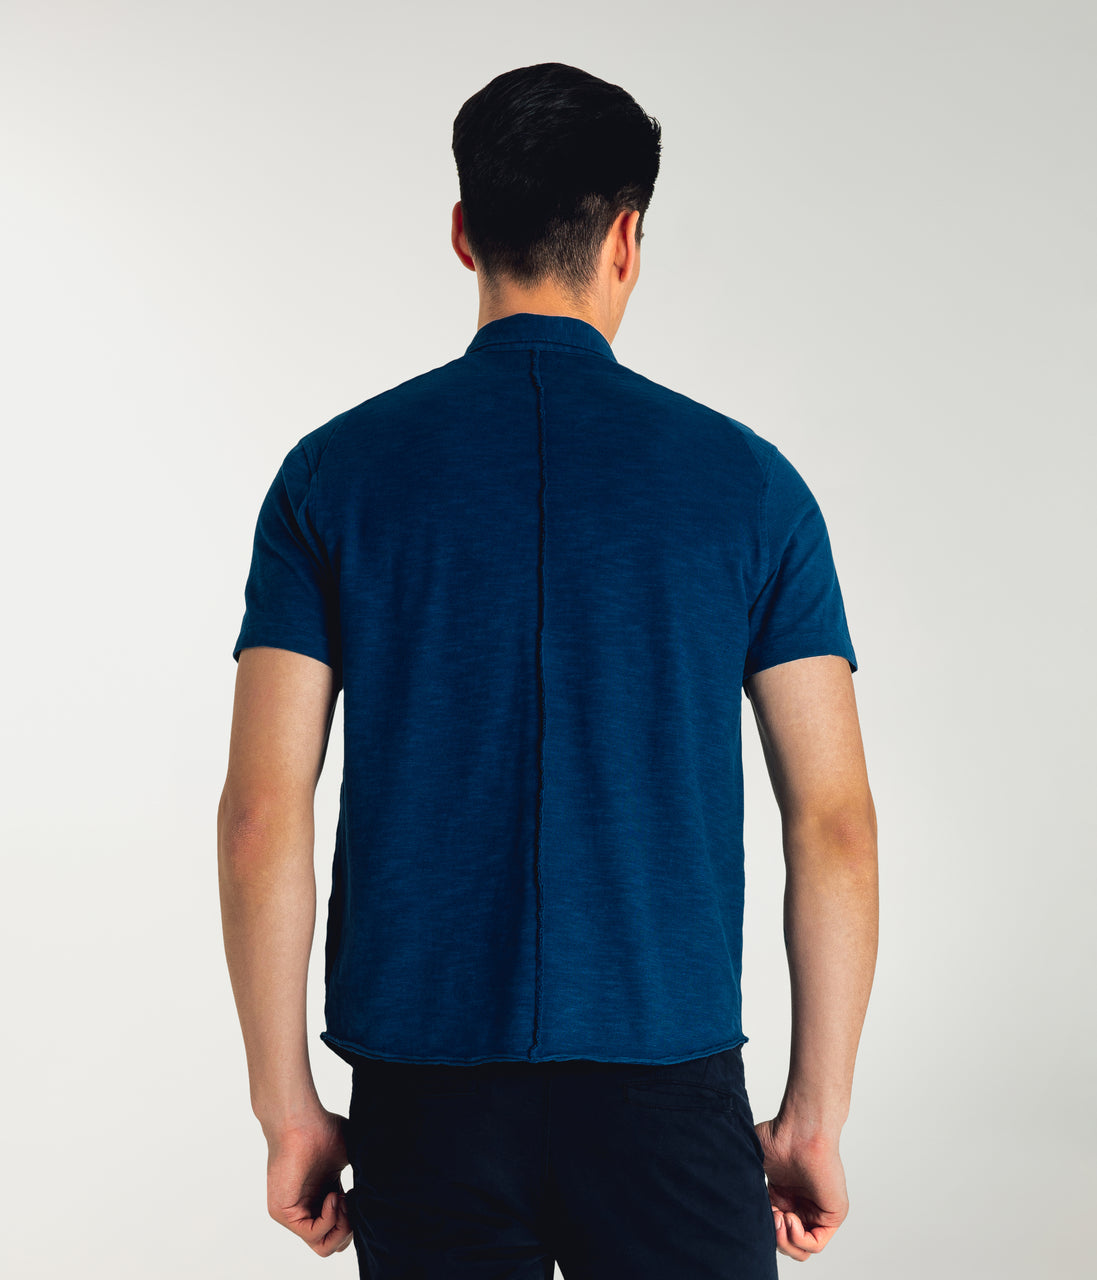 Soft Slub Jersey On-Point Shirt - Sea - Good Man Brand - Soft Slub Jersey On-Point Shirt - Sea